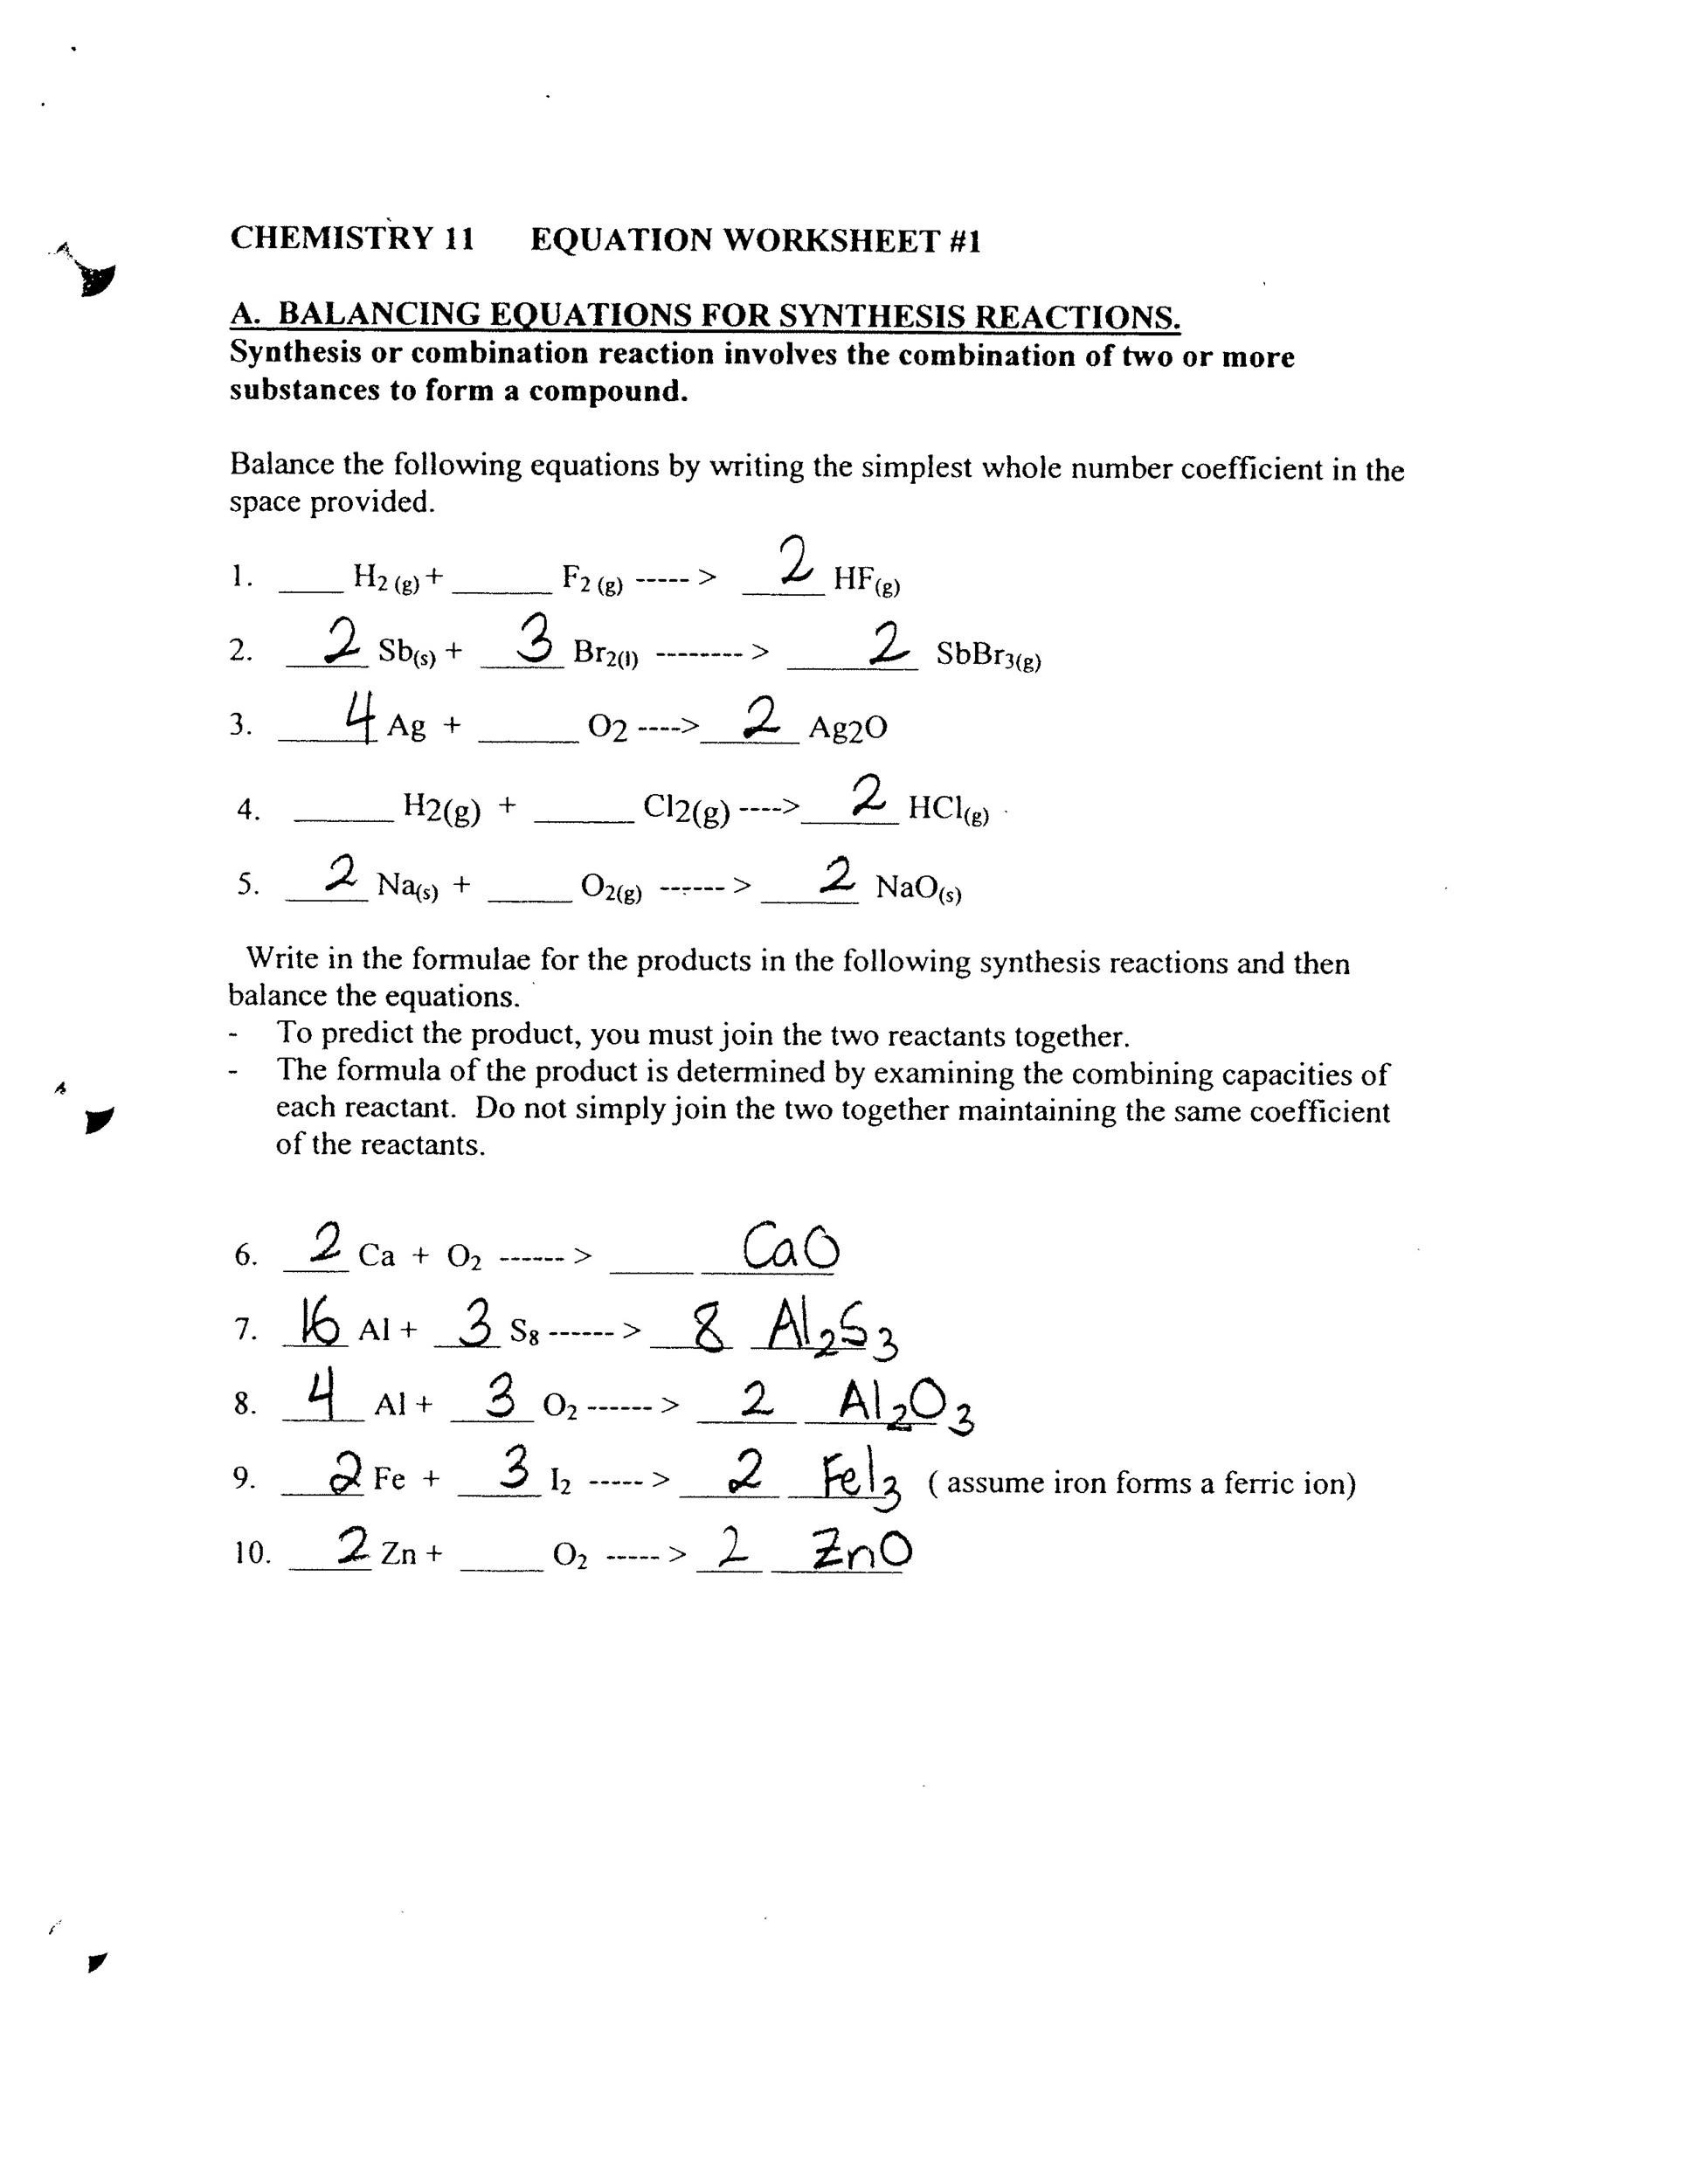 Chemistry Unit 10 Worksheet 2 Answers